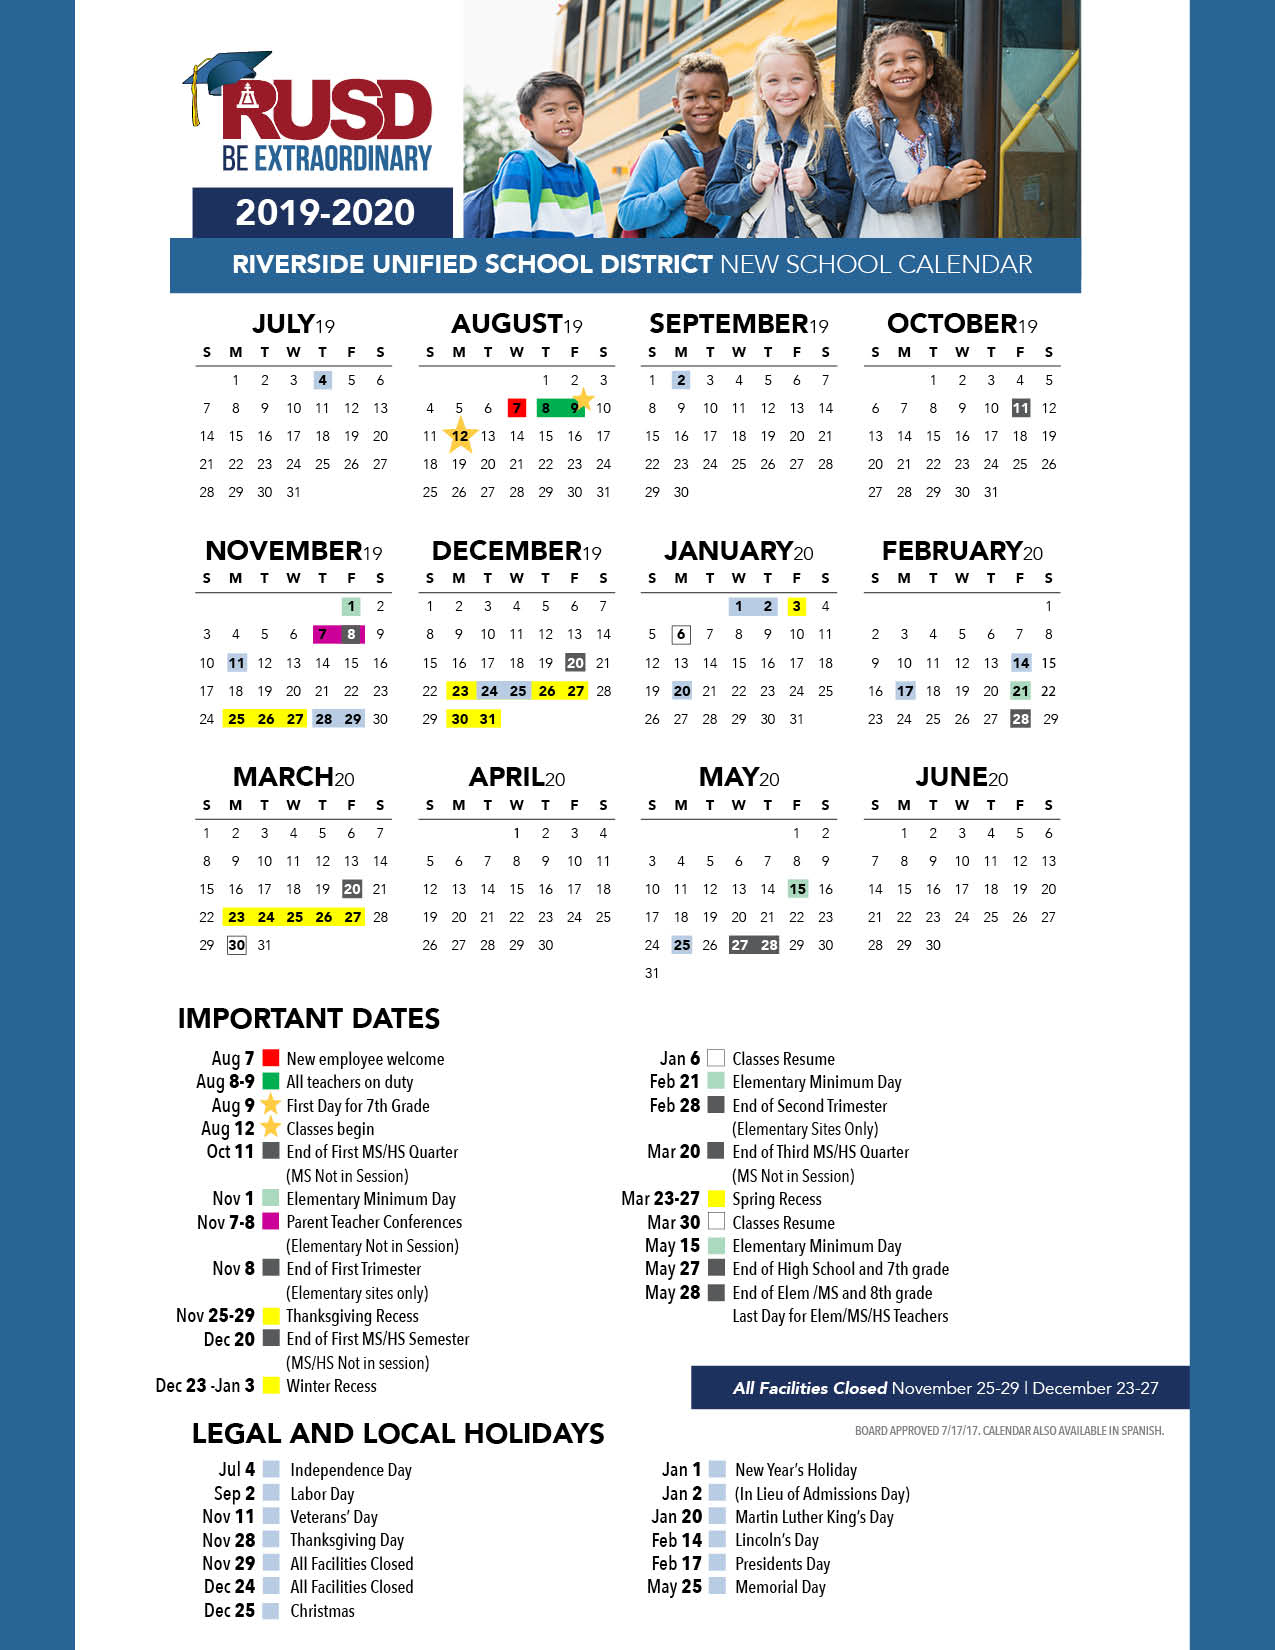 District Calendar - Riverside Unified School District pertaining to 2029 2020 Year At A Gllance Calendar